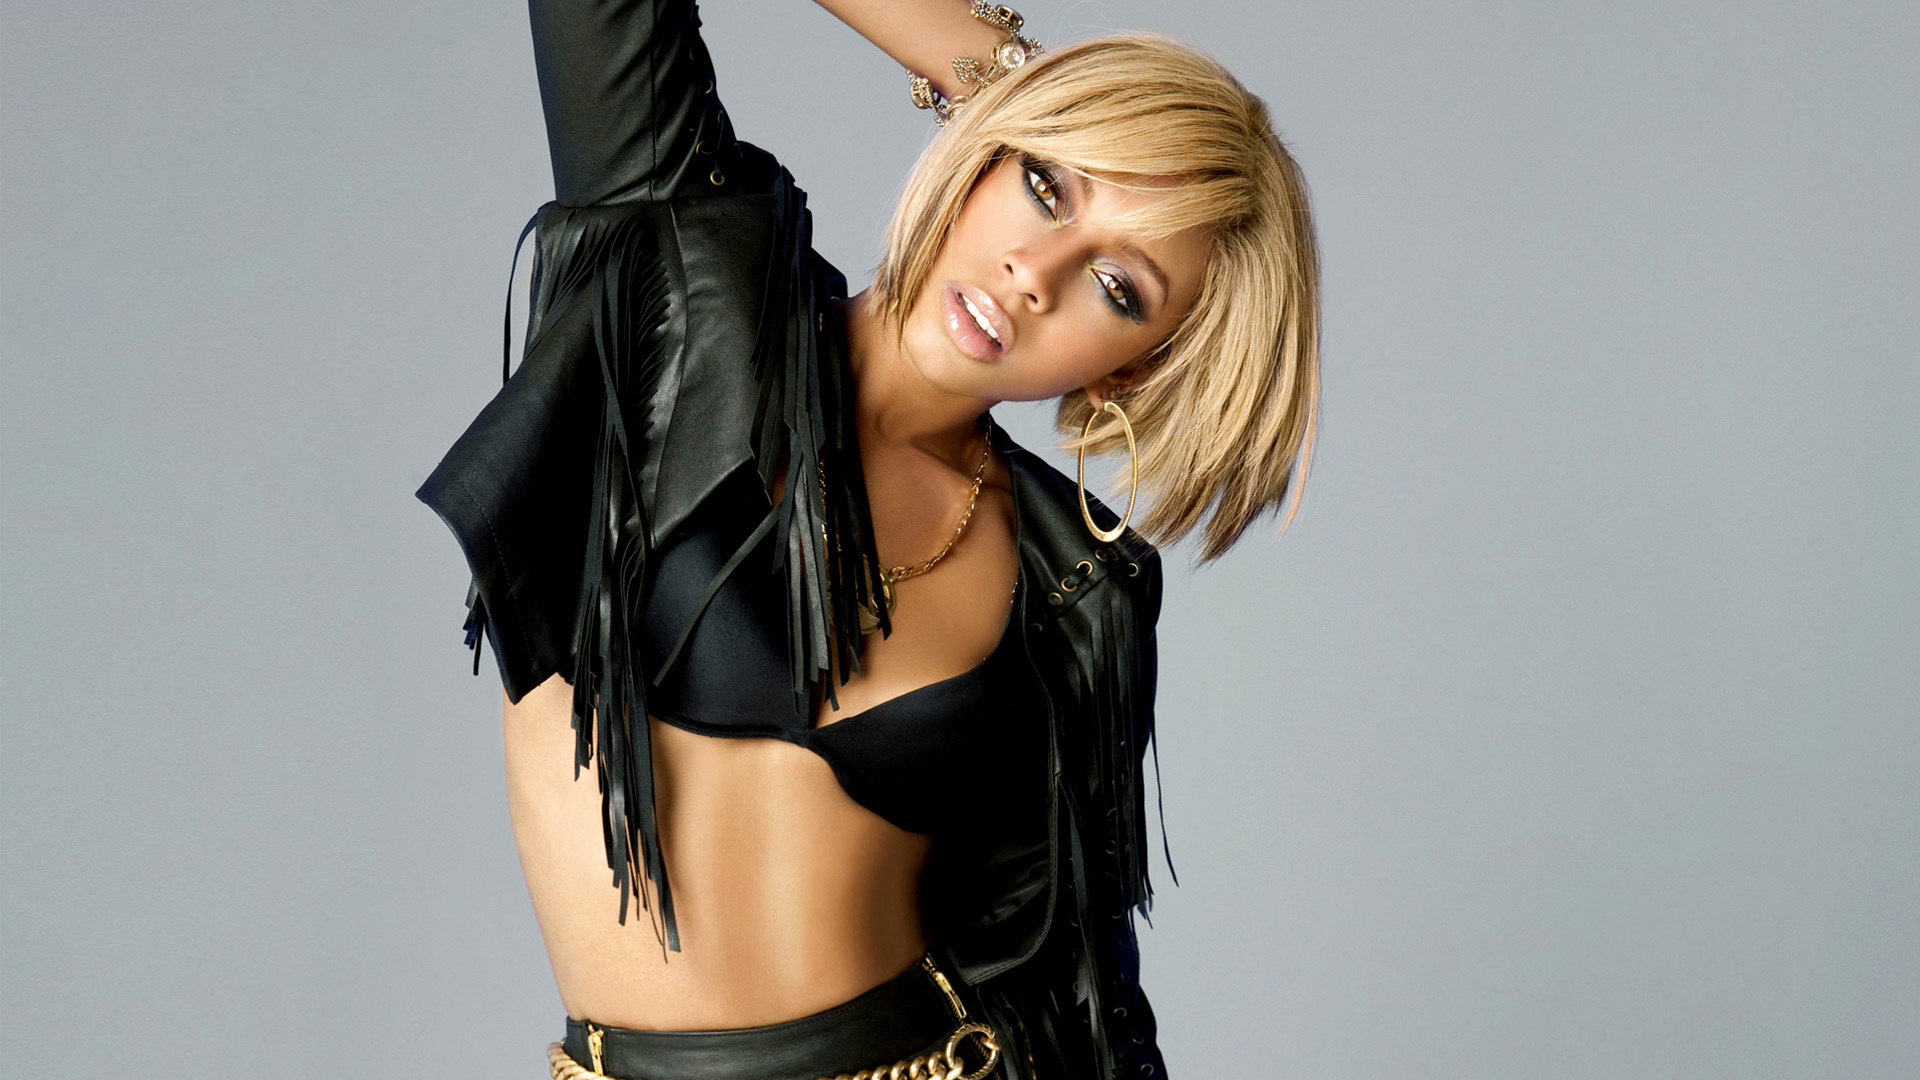 Number one sex Dirty Keri Hilson ft R kelly with lyrics